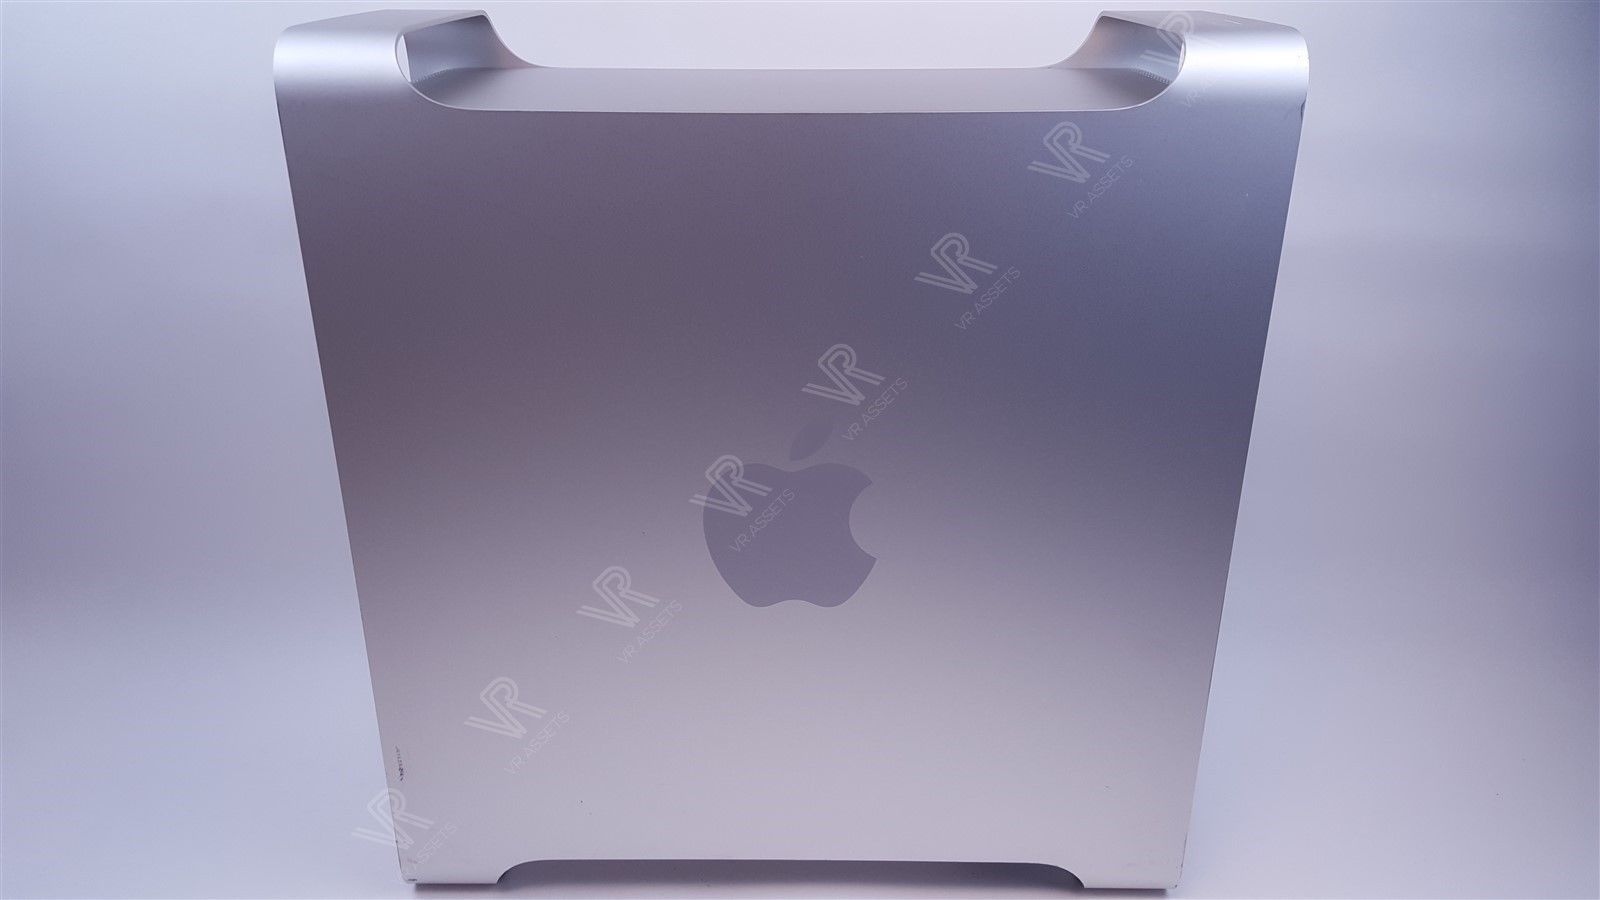 Apple Mac Pro A1186 2006 Quad Core Dual Xeon 2.66GHz 6Gb 500Gb GT 7300 MA356LL/A